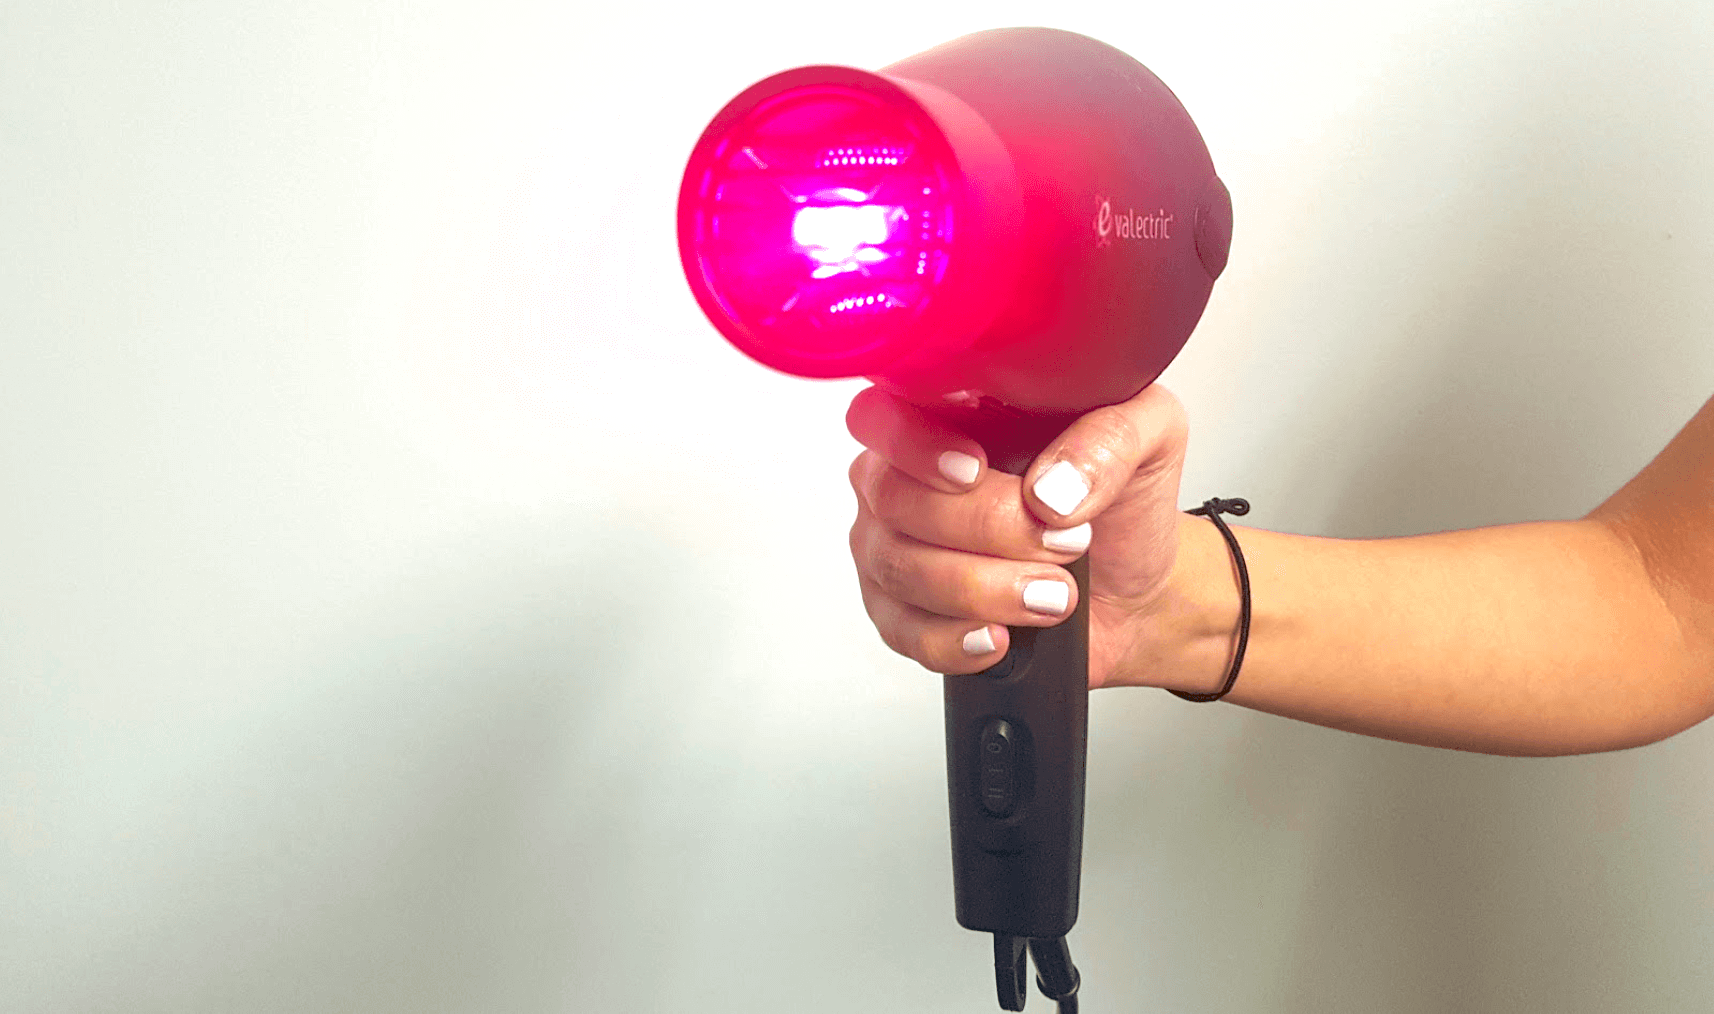 Evalectric Iconix LED Blow Dryer review